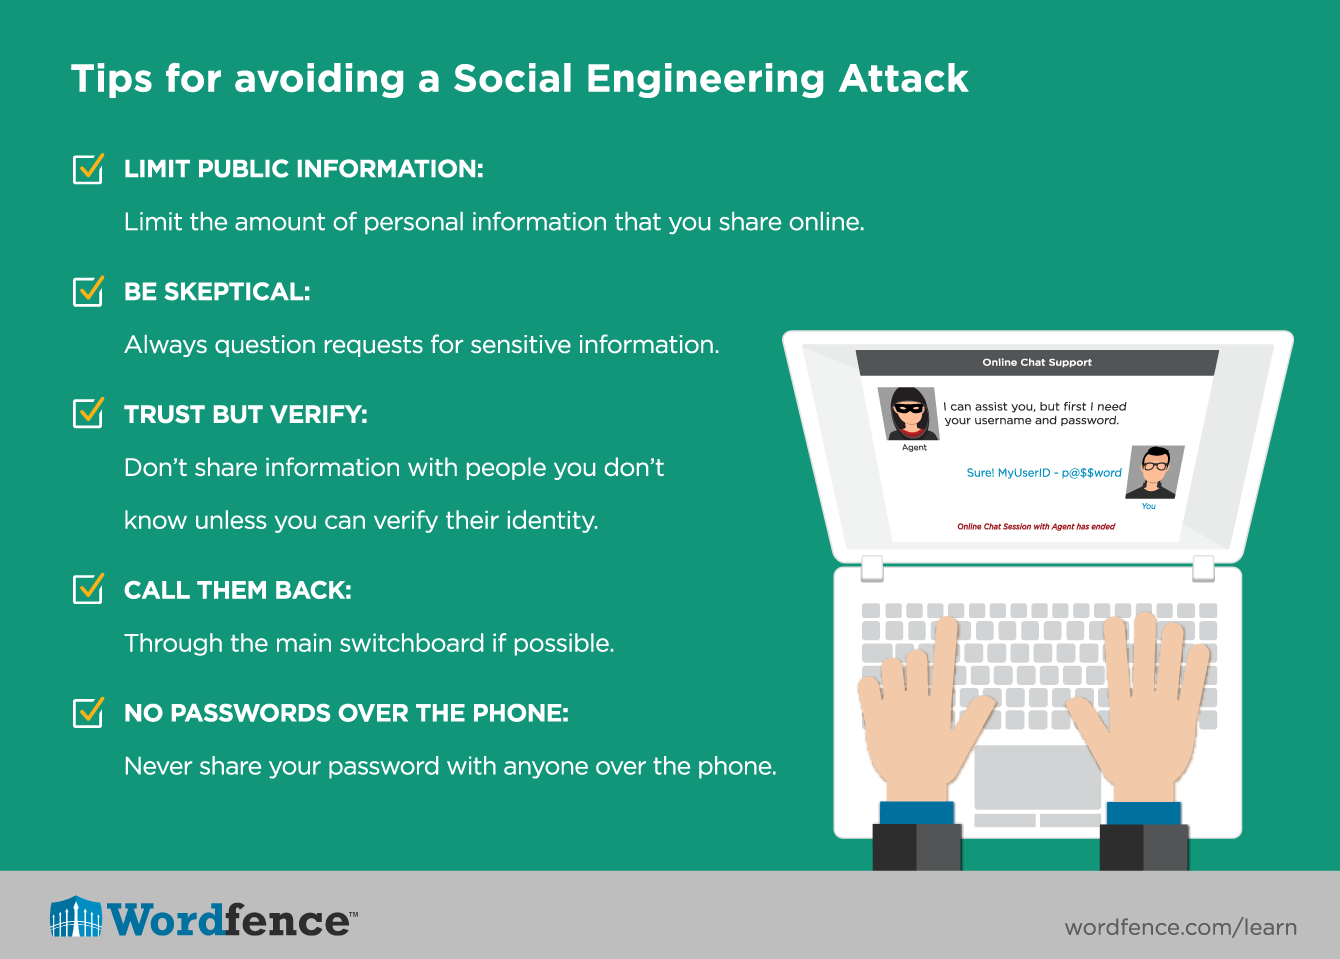 Tips for avoiding a social engineering attack